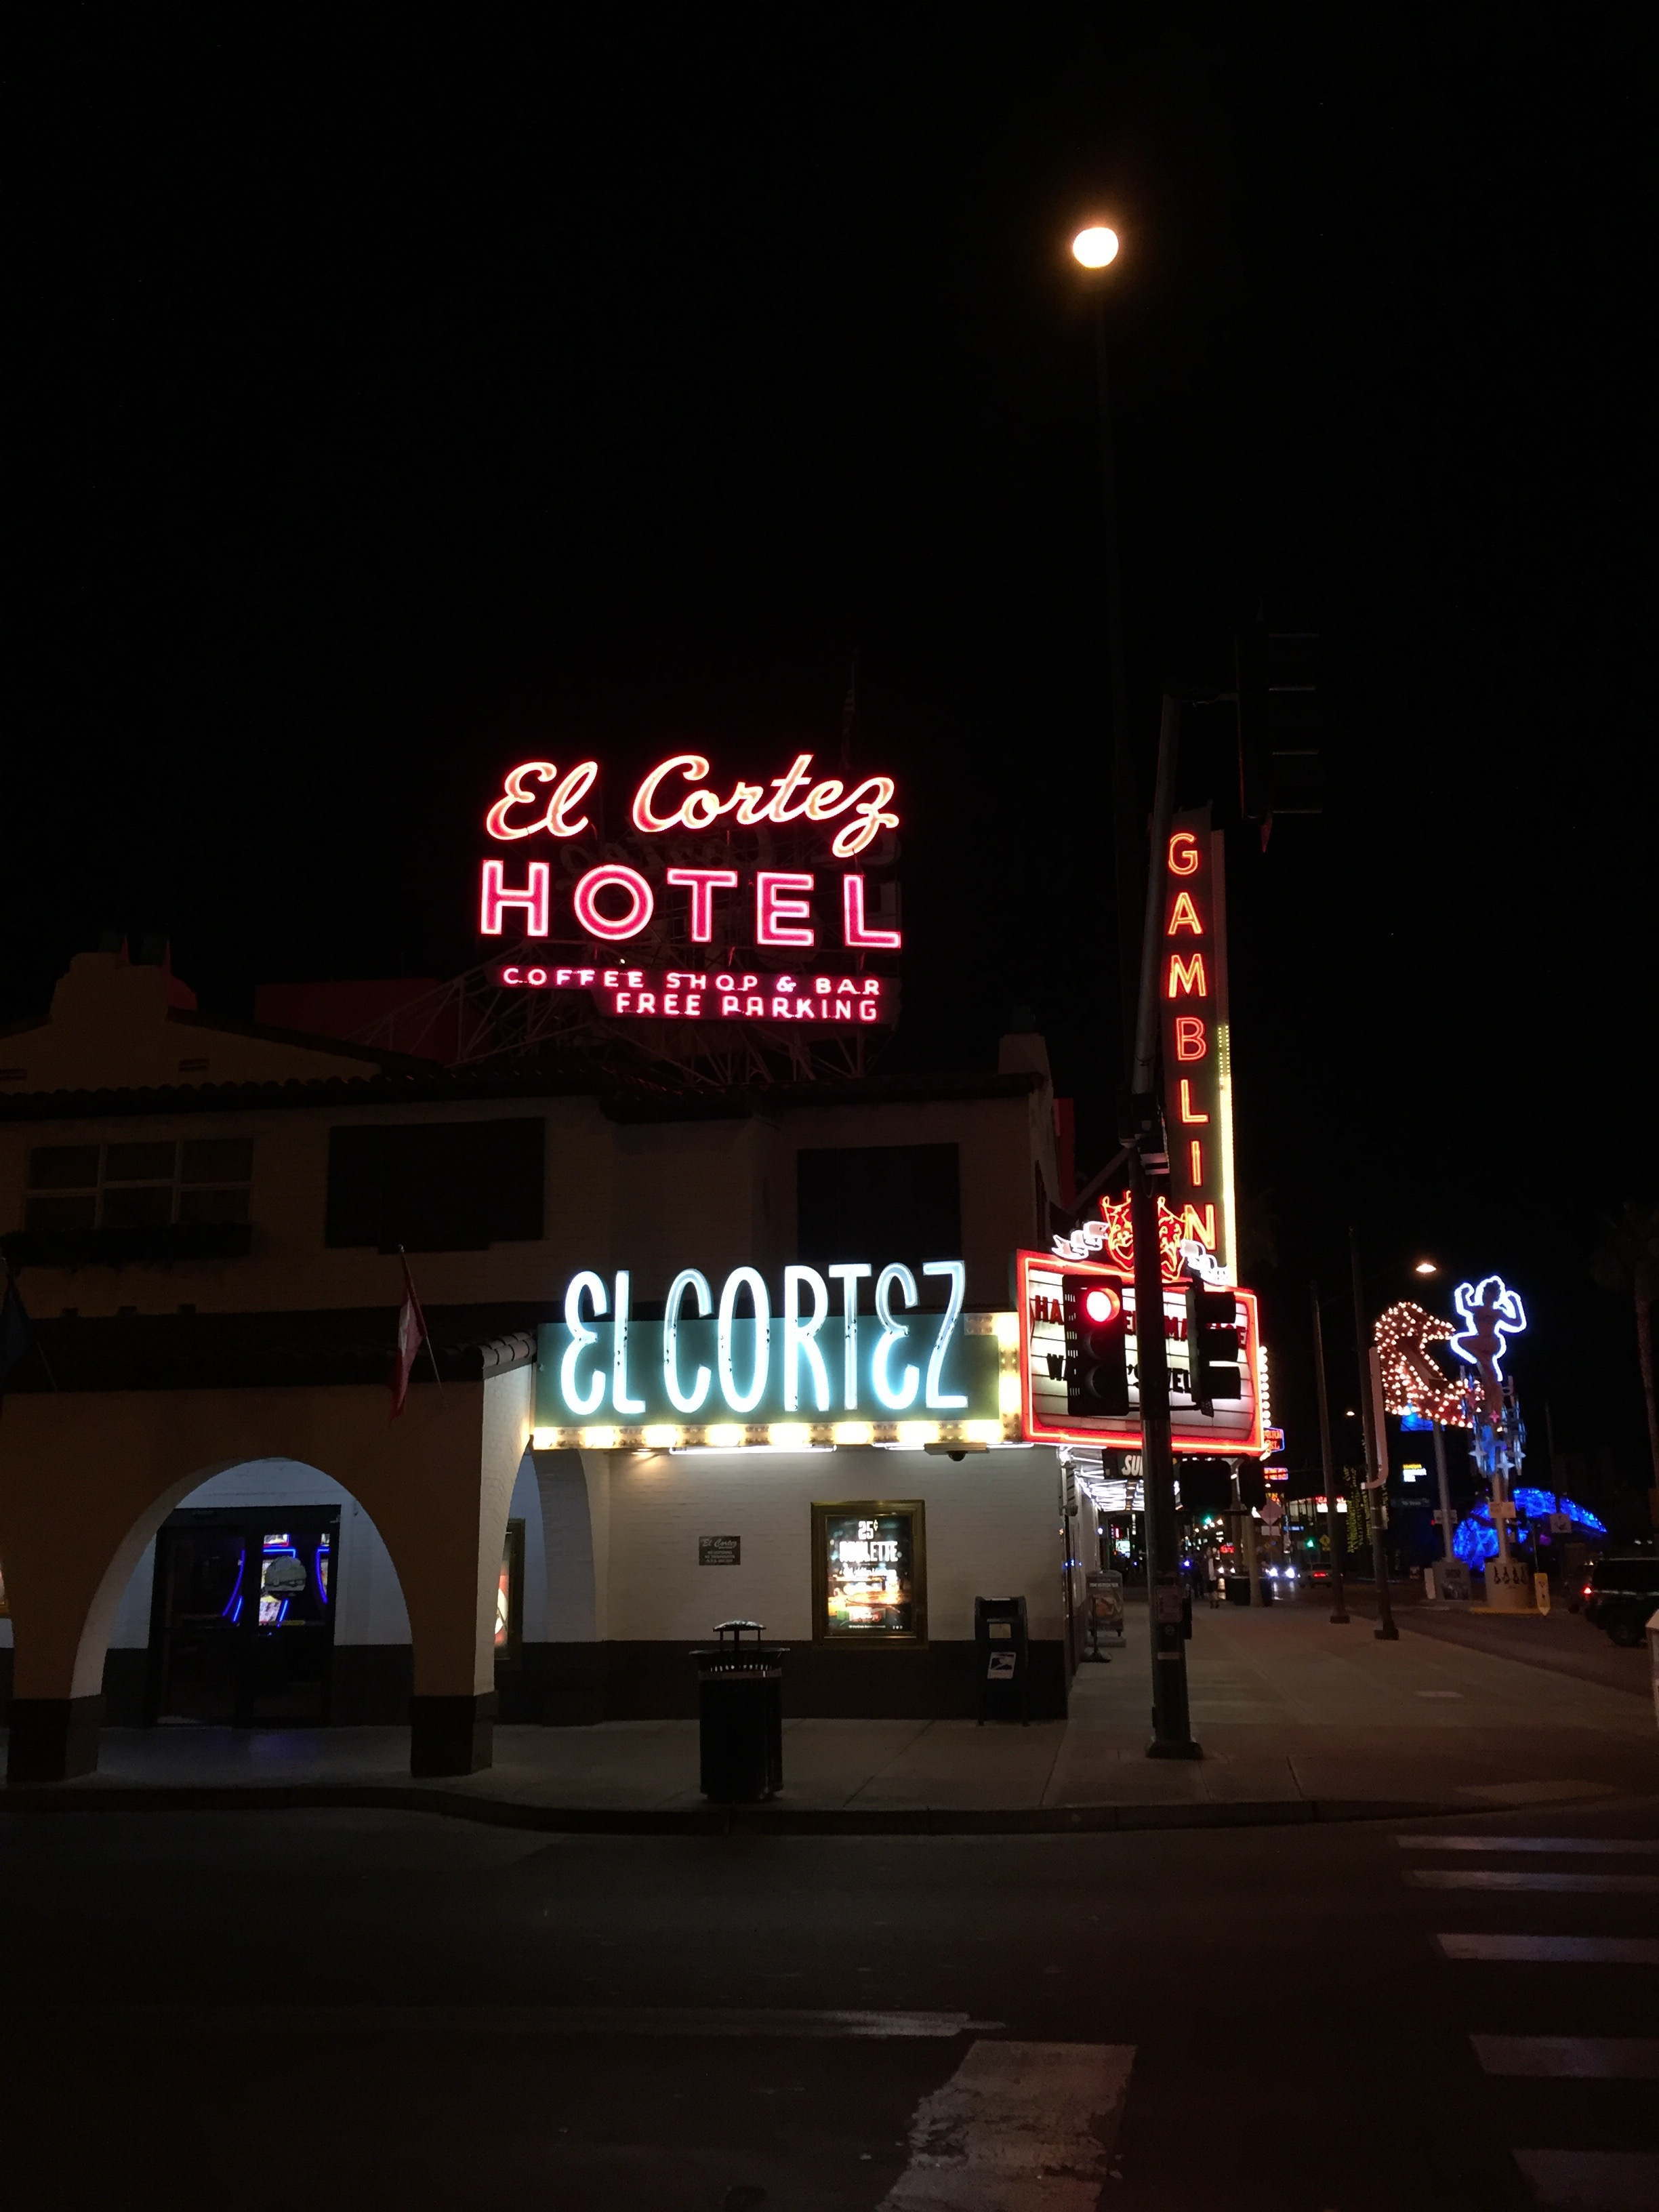 There's something great about hanging out in Downtown Vegas, it's still seedy enough to make the night feel like an adventure, but gentrified enough to easily find a decent cocktail and meal.